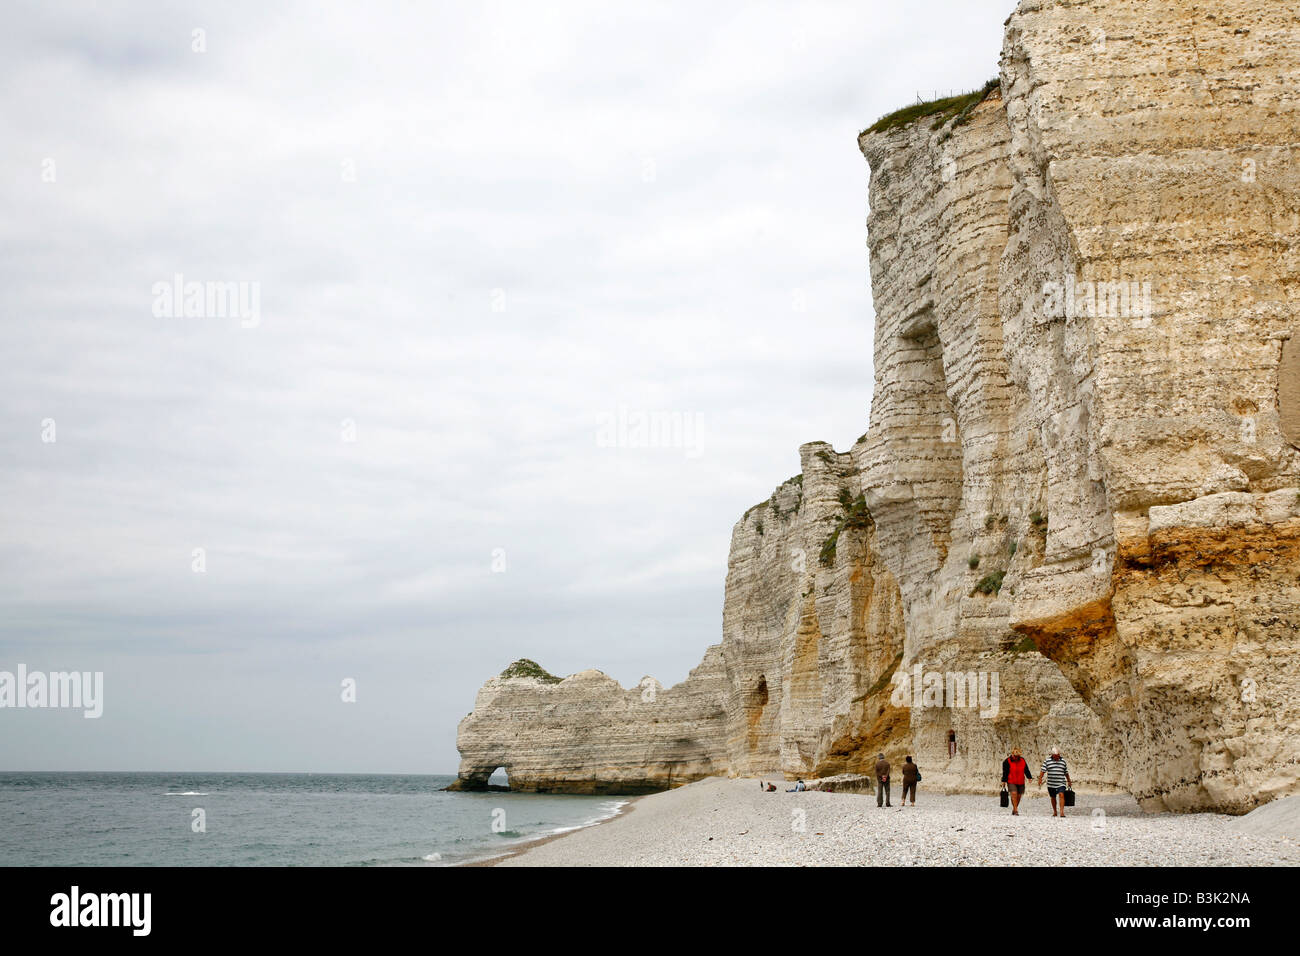 July 2008 - The beach at Etretat with its cliffs also known as Falaises Normandy France - Stock Image